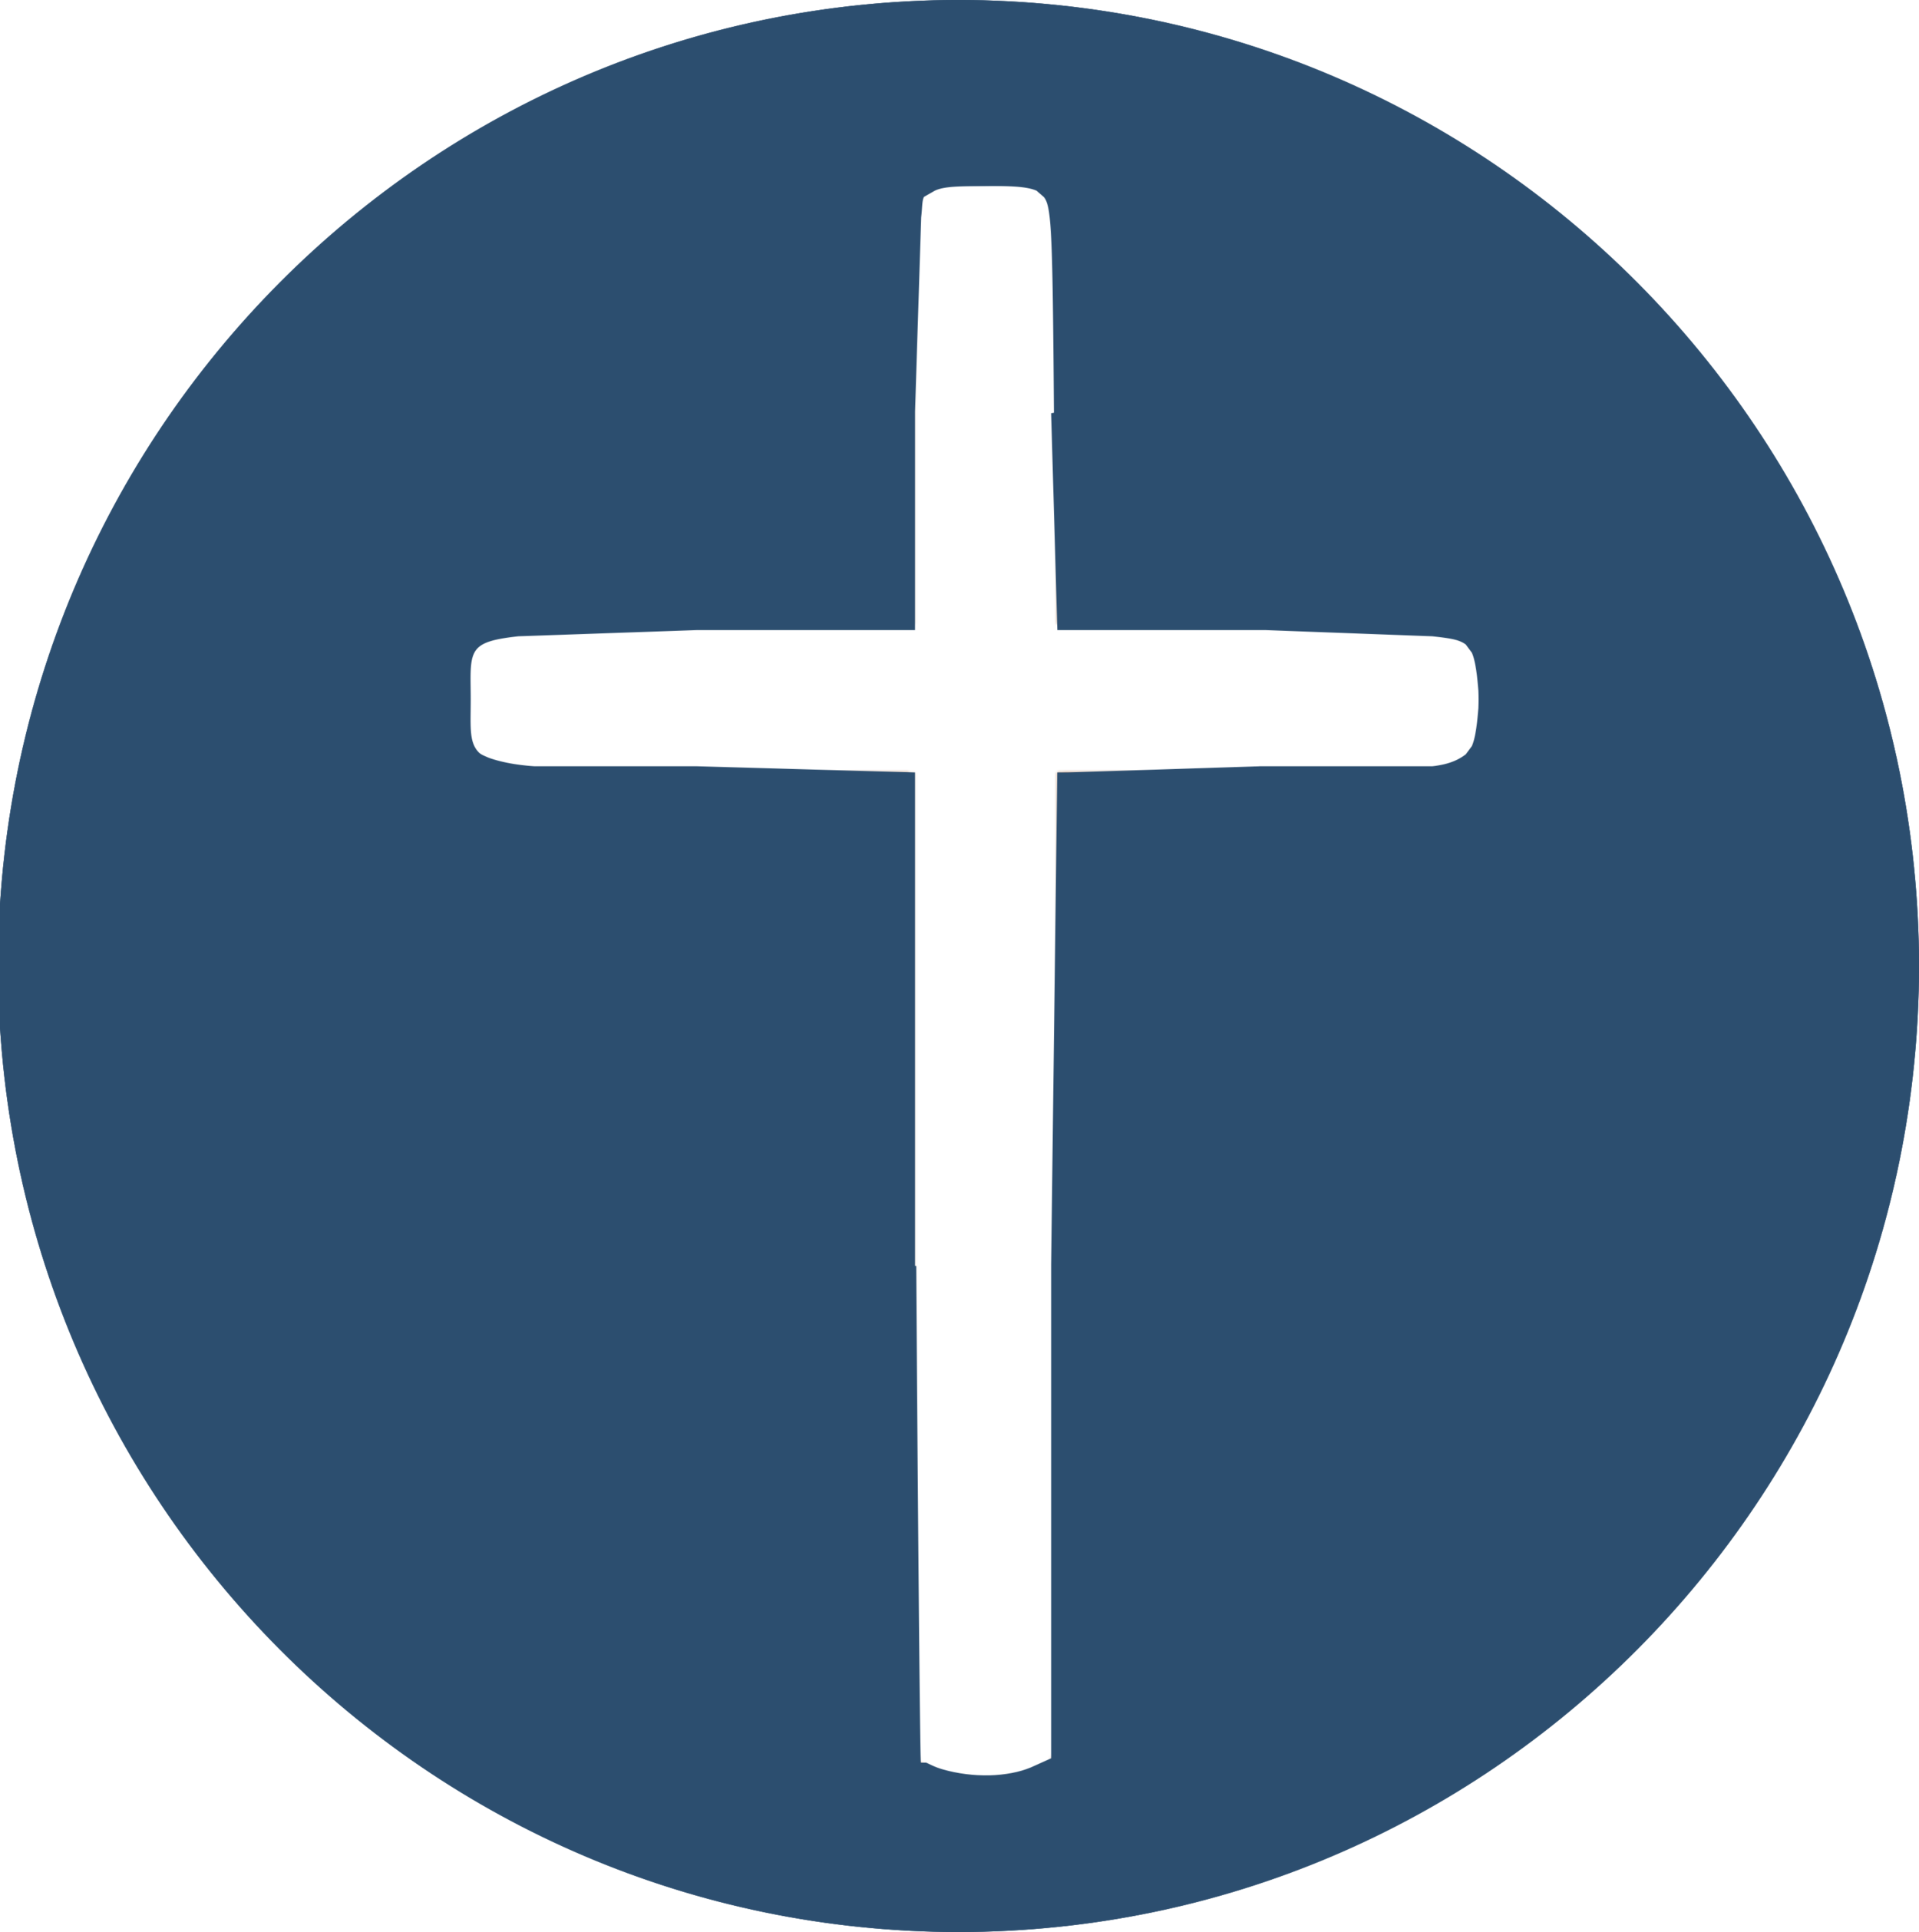 Blue Mission Initiative Cross circle.png